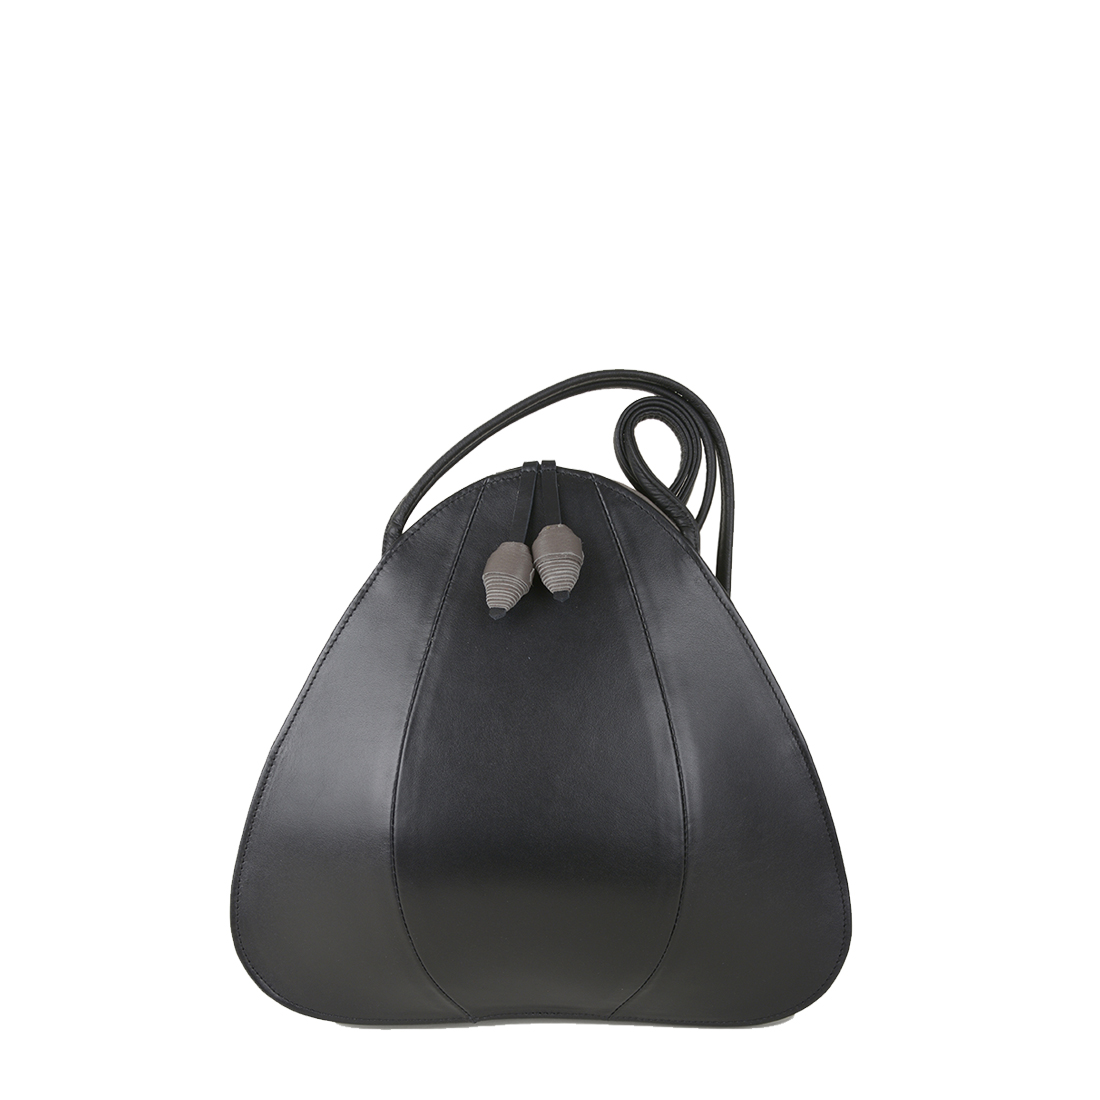 Petal Black Grigio Leather Shoulder Bag